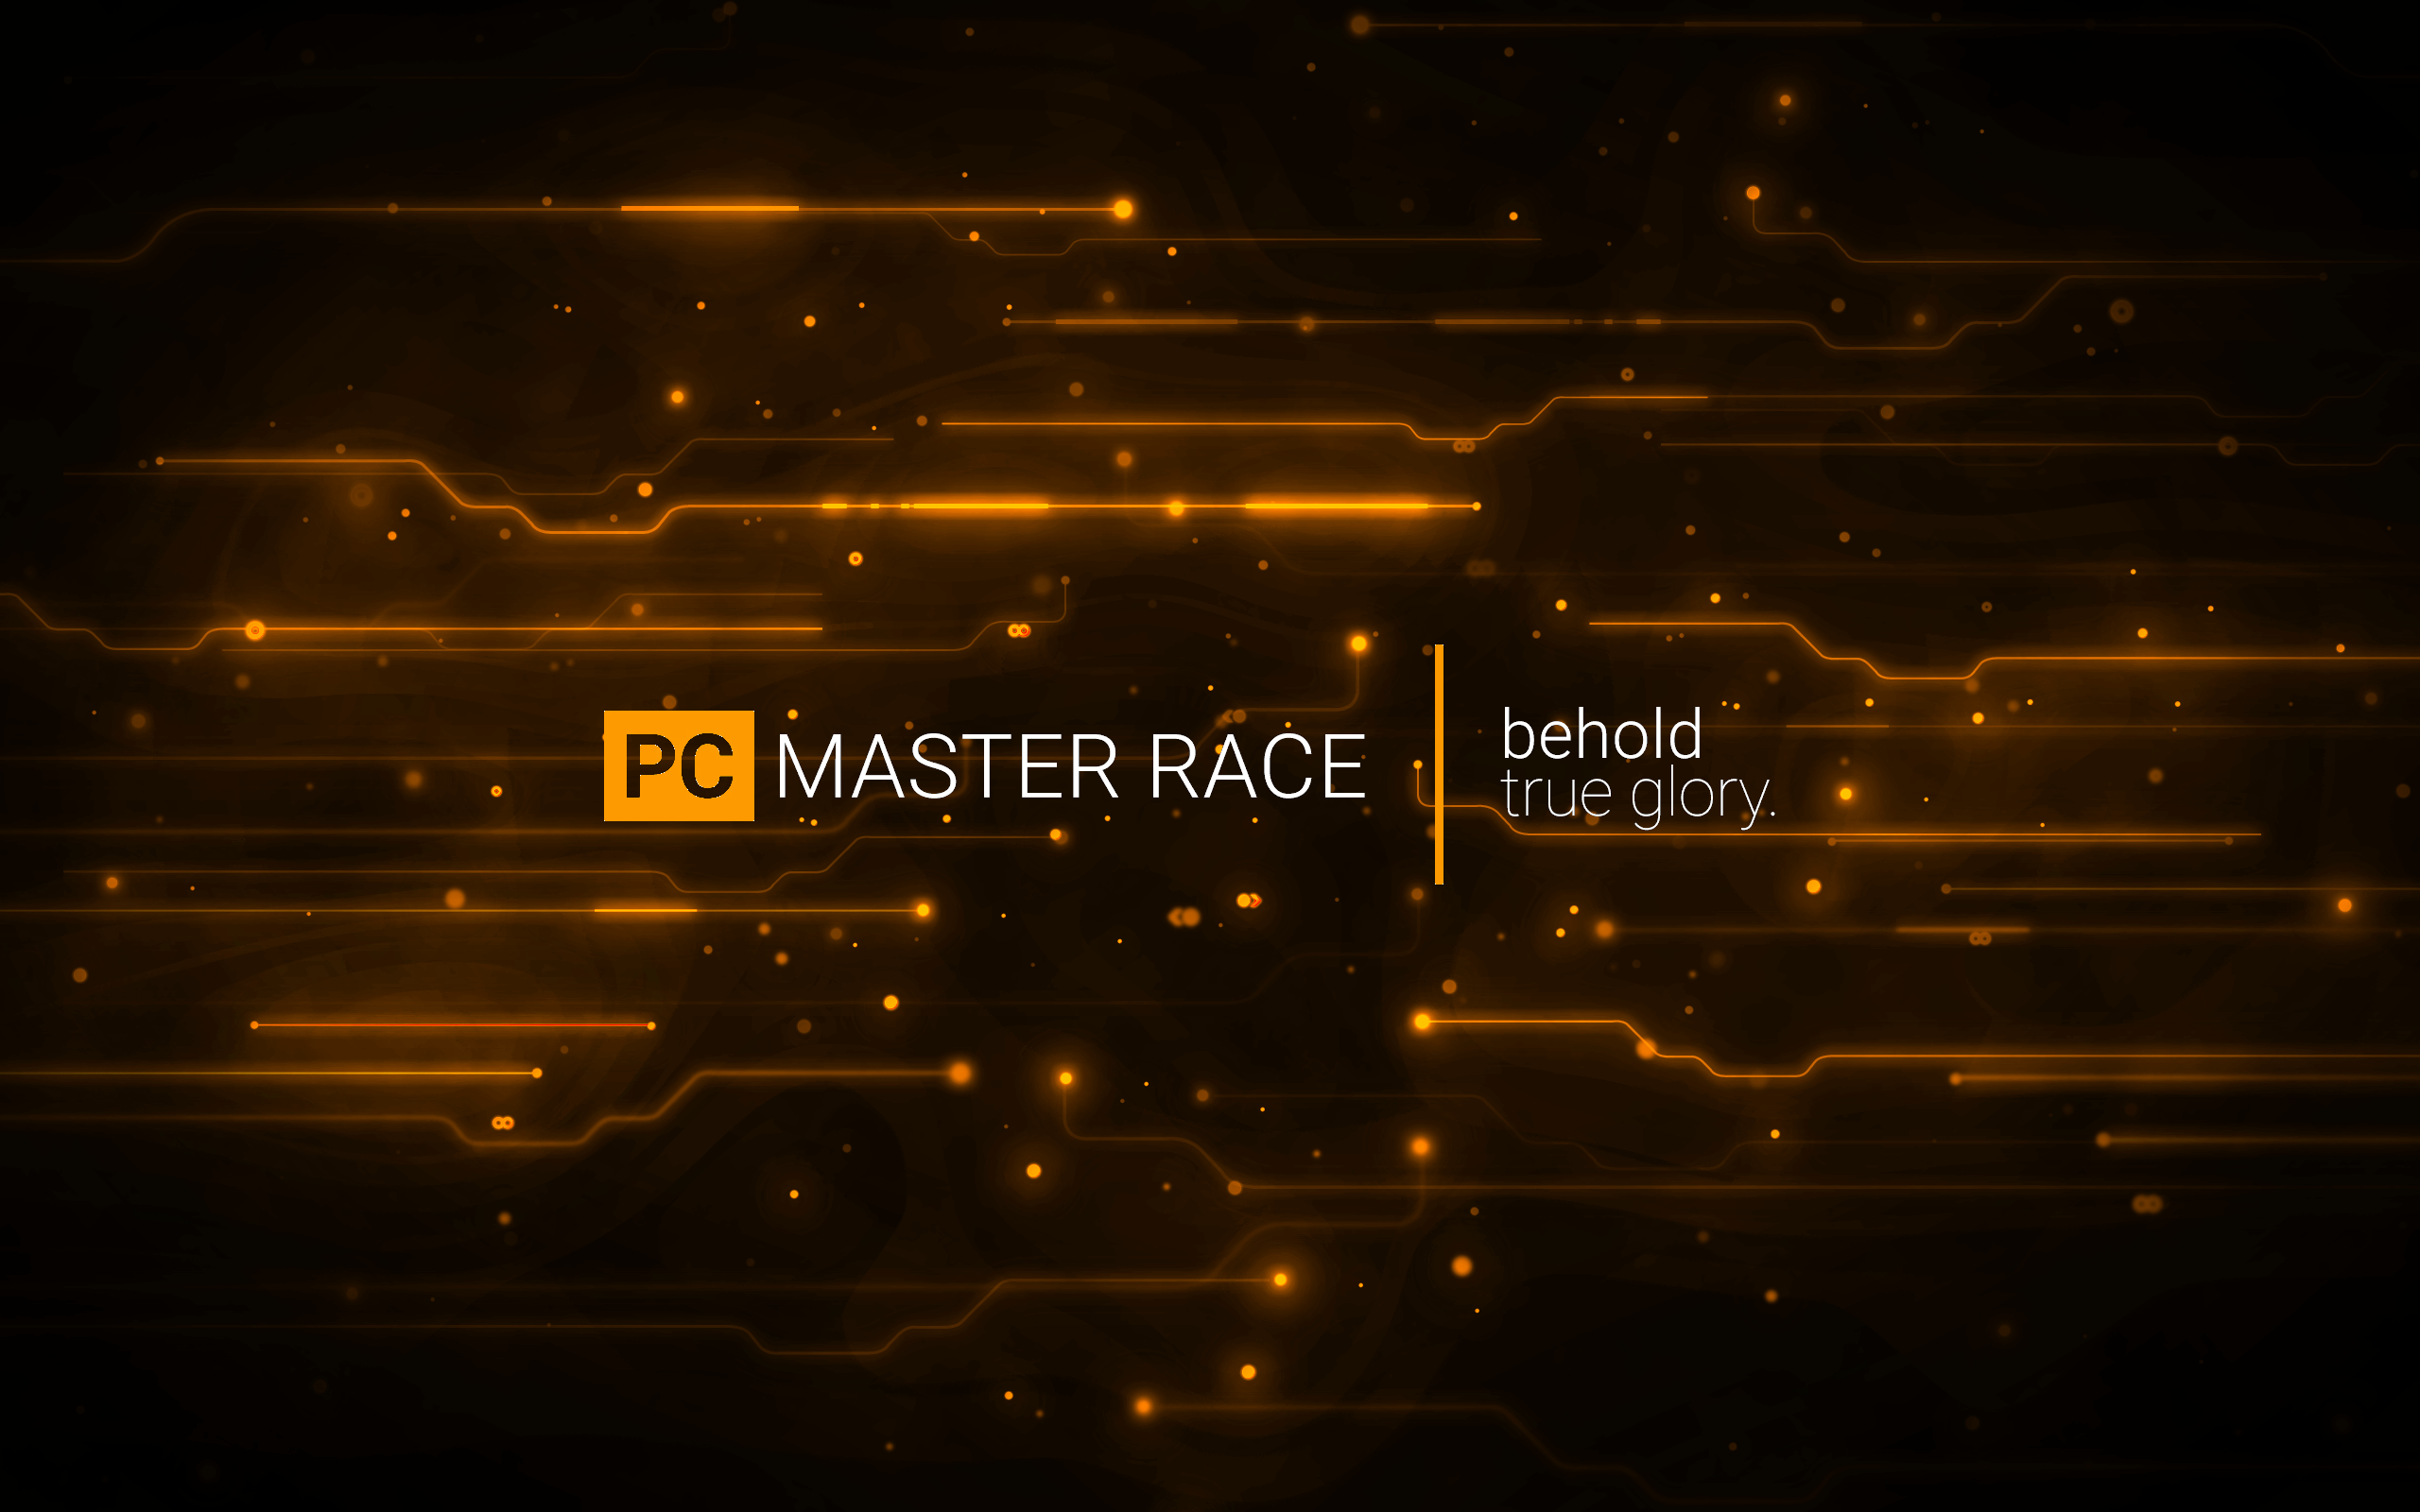 pc master race wallpaper - photo #18